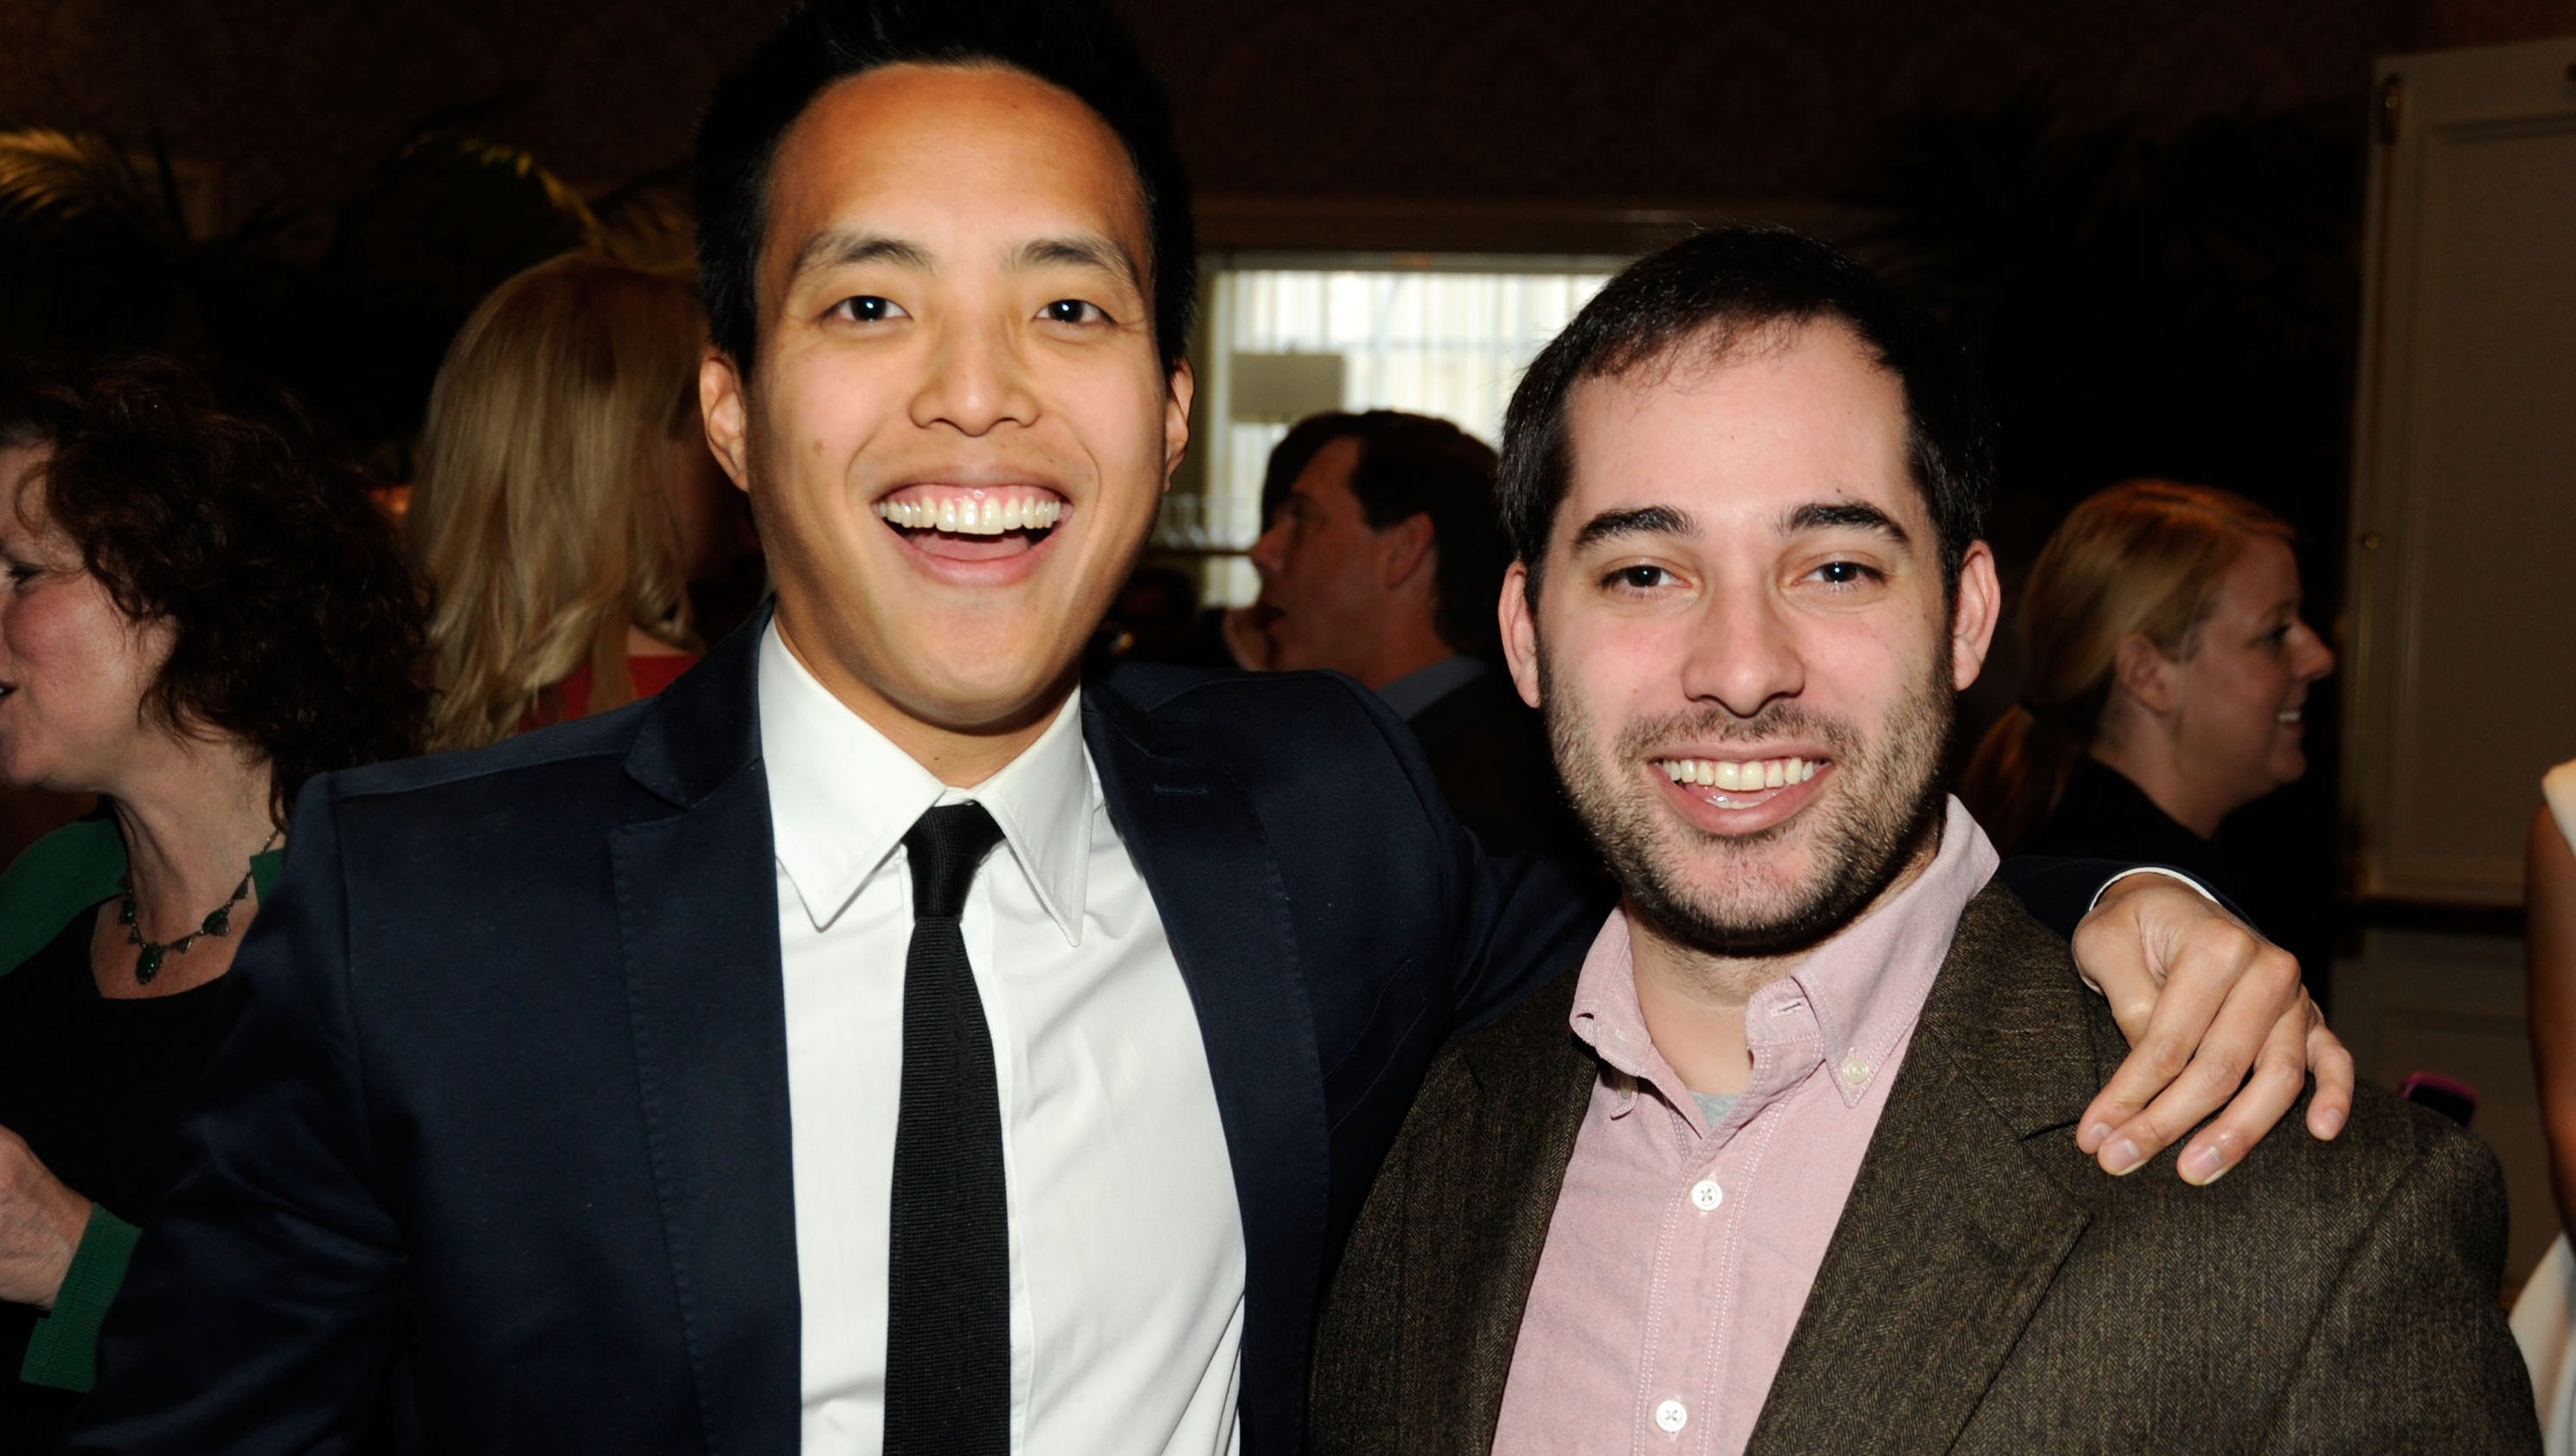 Parks and Recreation writer producer Harris Wittels s at 30